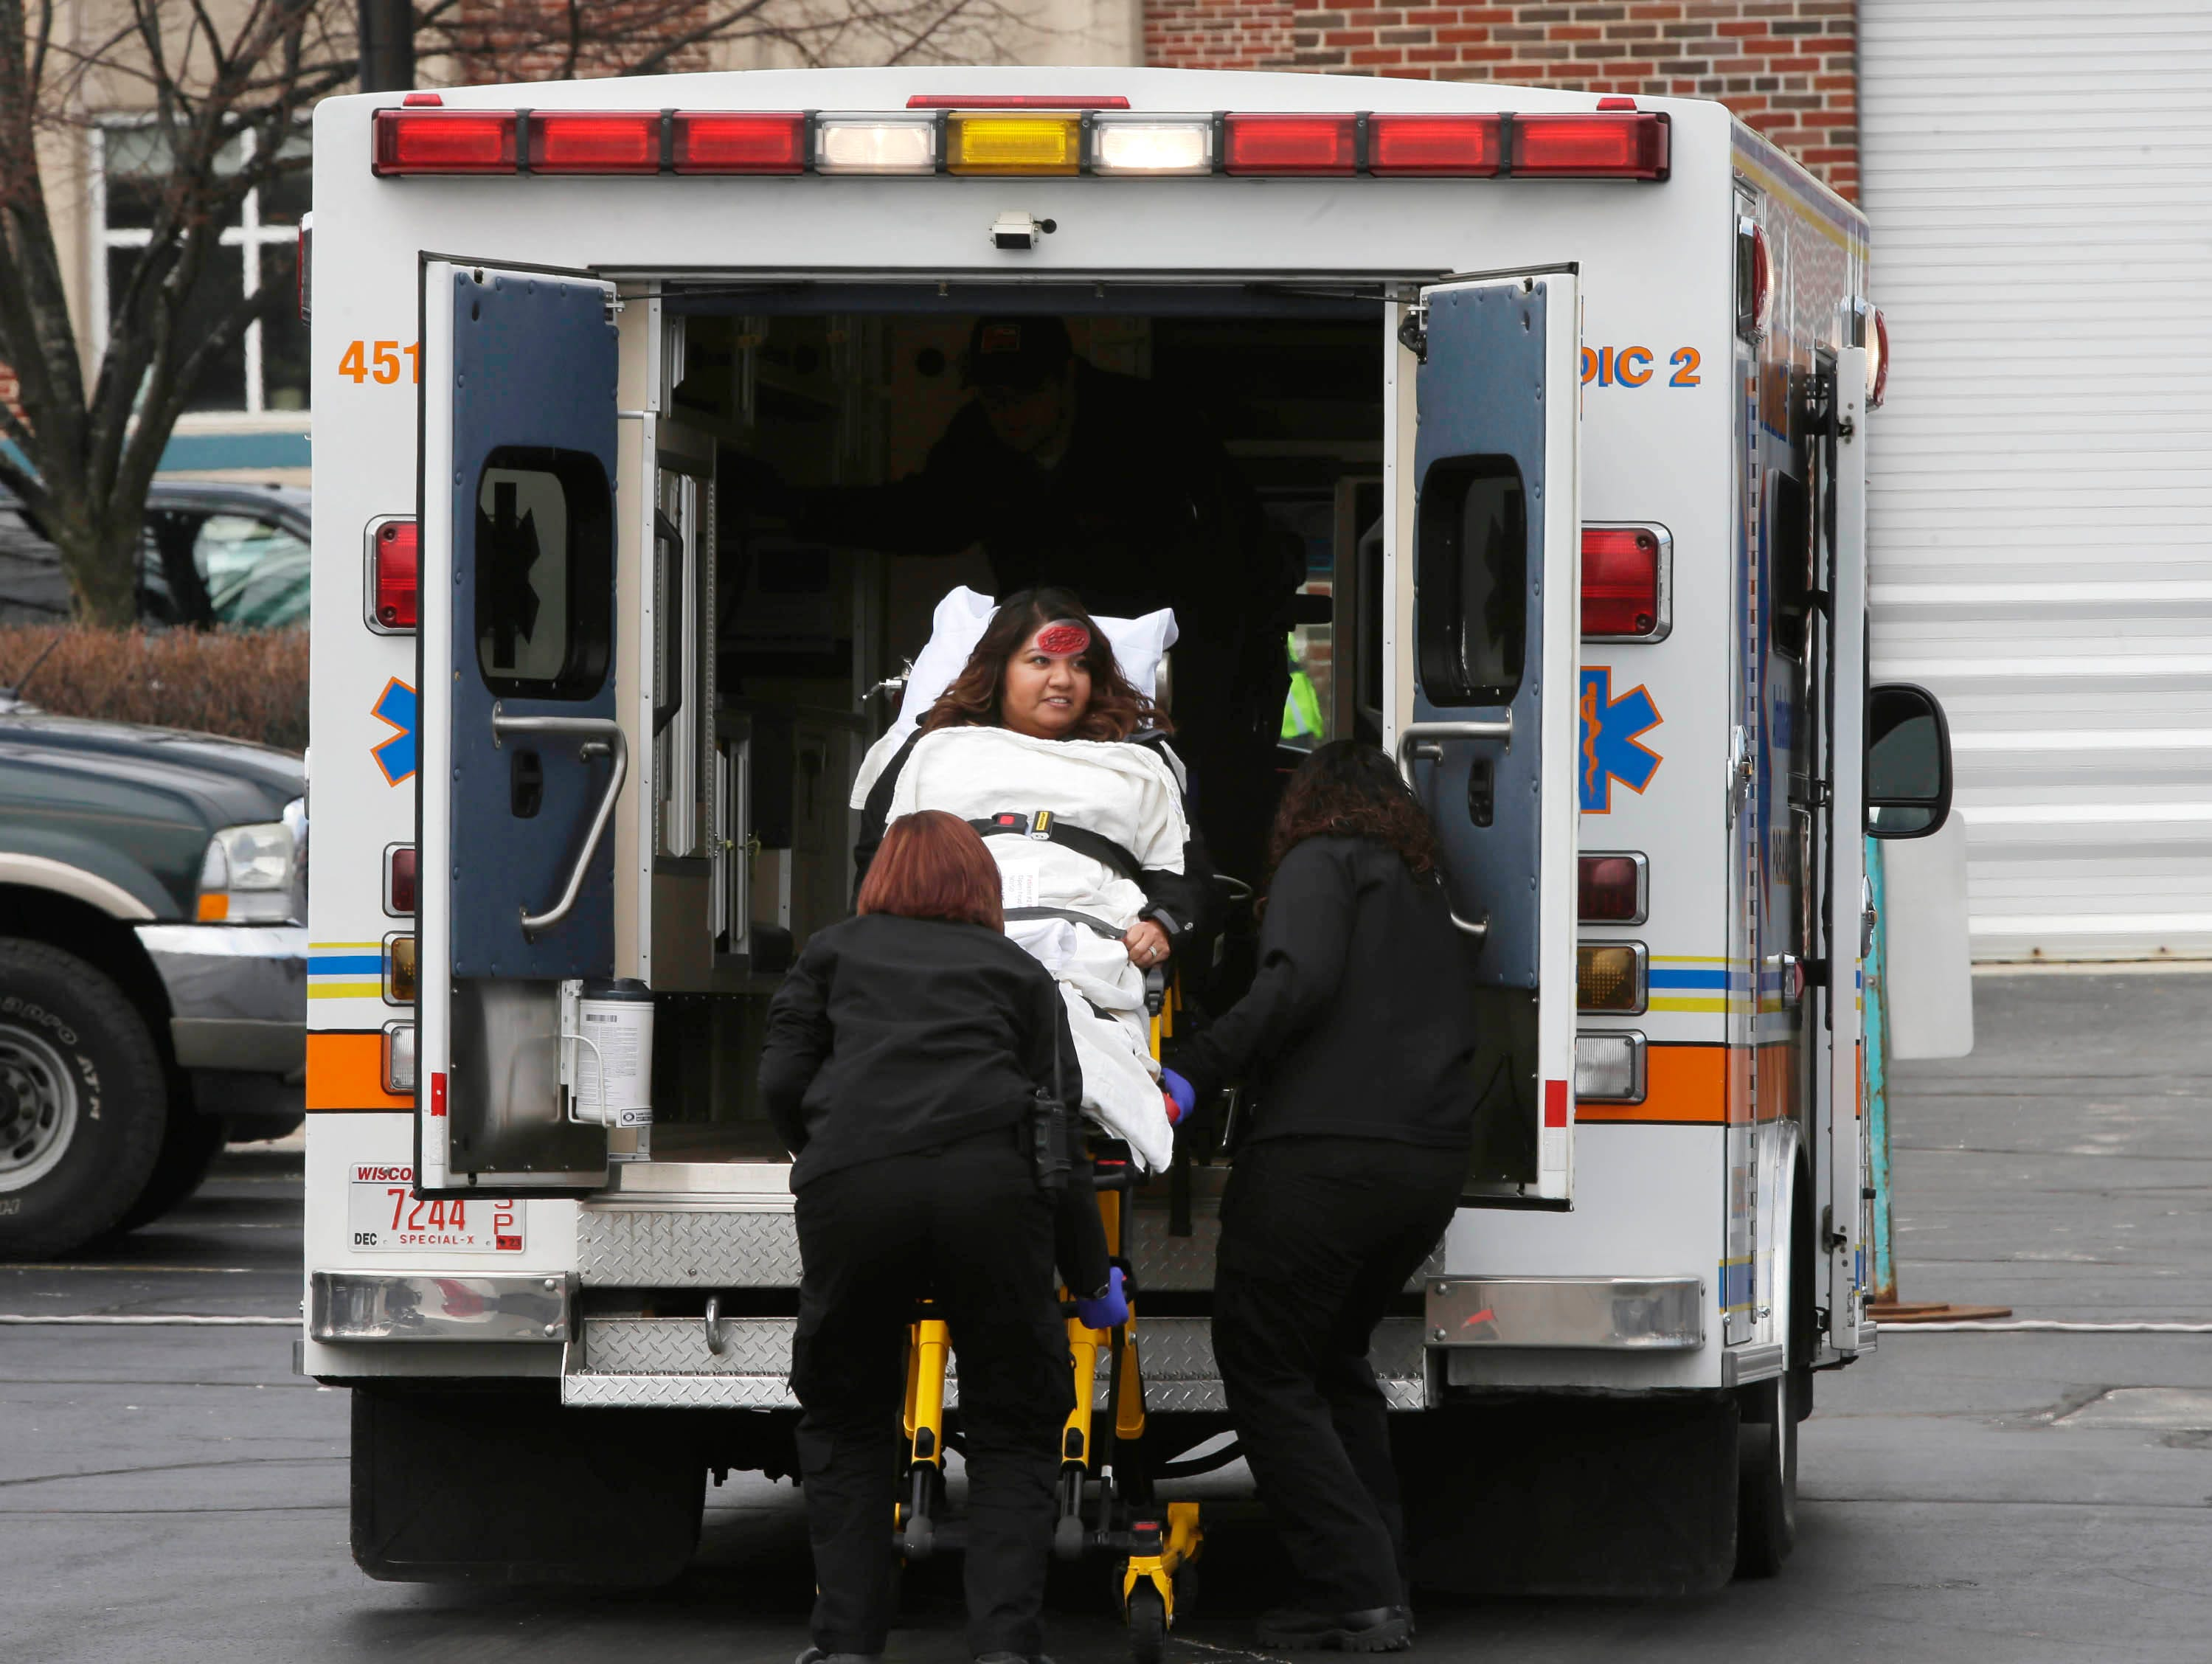 DRILL EXERCISE: A victim is loaded into an Orange Cross ambulance at Aurora Sheboygan Memorial Medical Center during a training exercise for Sheboygan area emergency agencies, Tuesday, April 16, 2019, in Sheboygan, Wis.